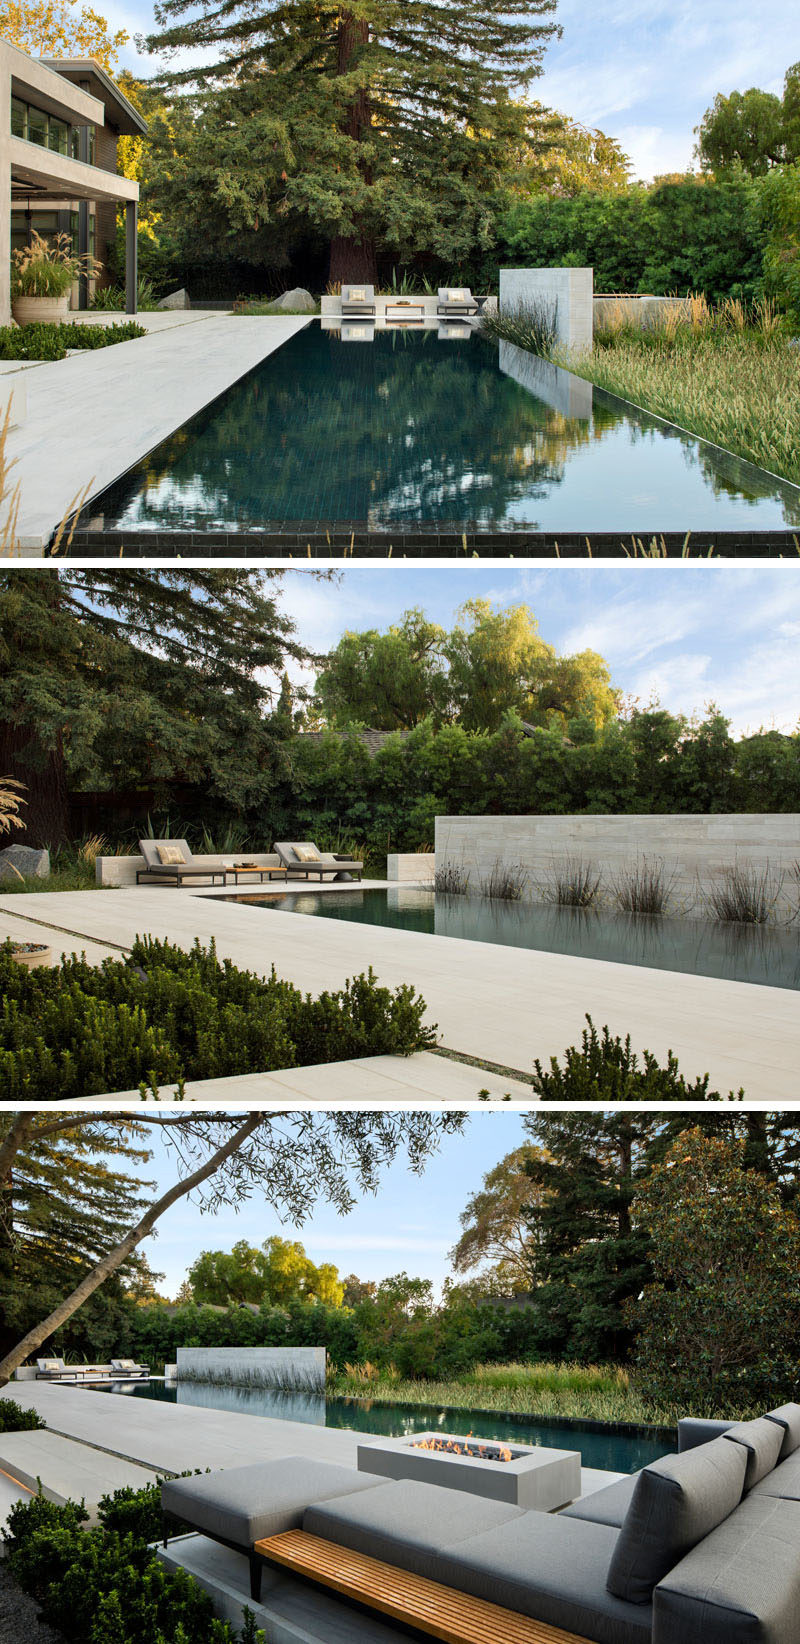 With tranquil views of the lush landscape and redwoods reflecting on the pool, the outdoor fire pit and lounge area form a relaxing outdoor space. #SwimmingPool #Landscaping #Firepit